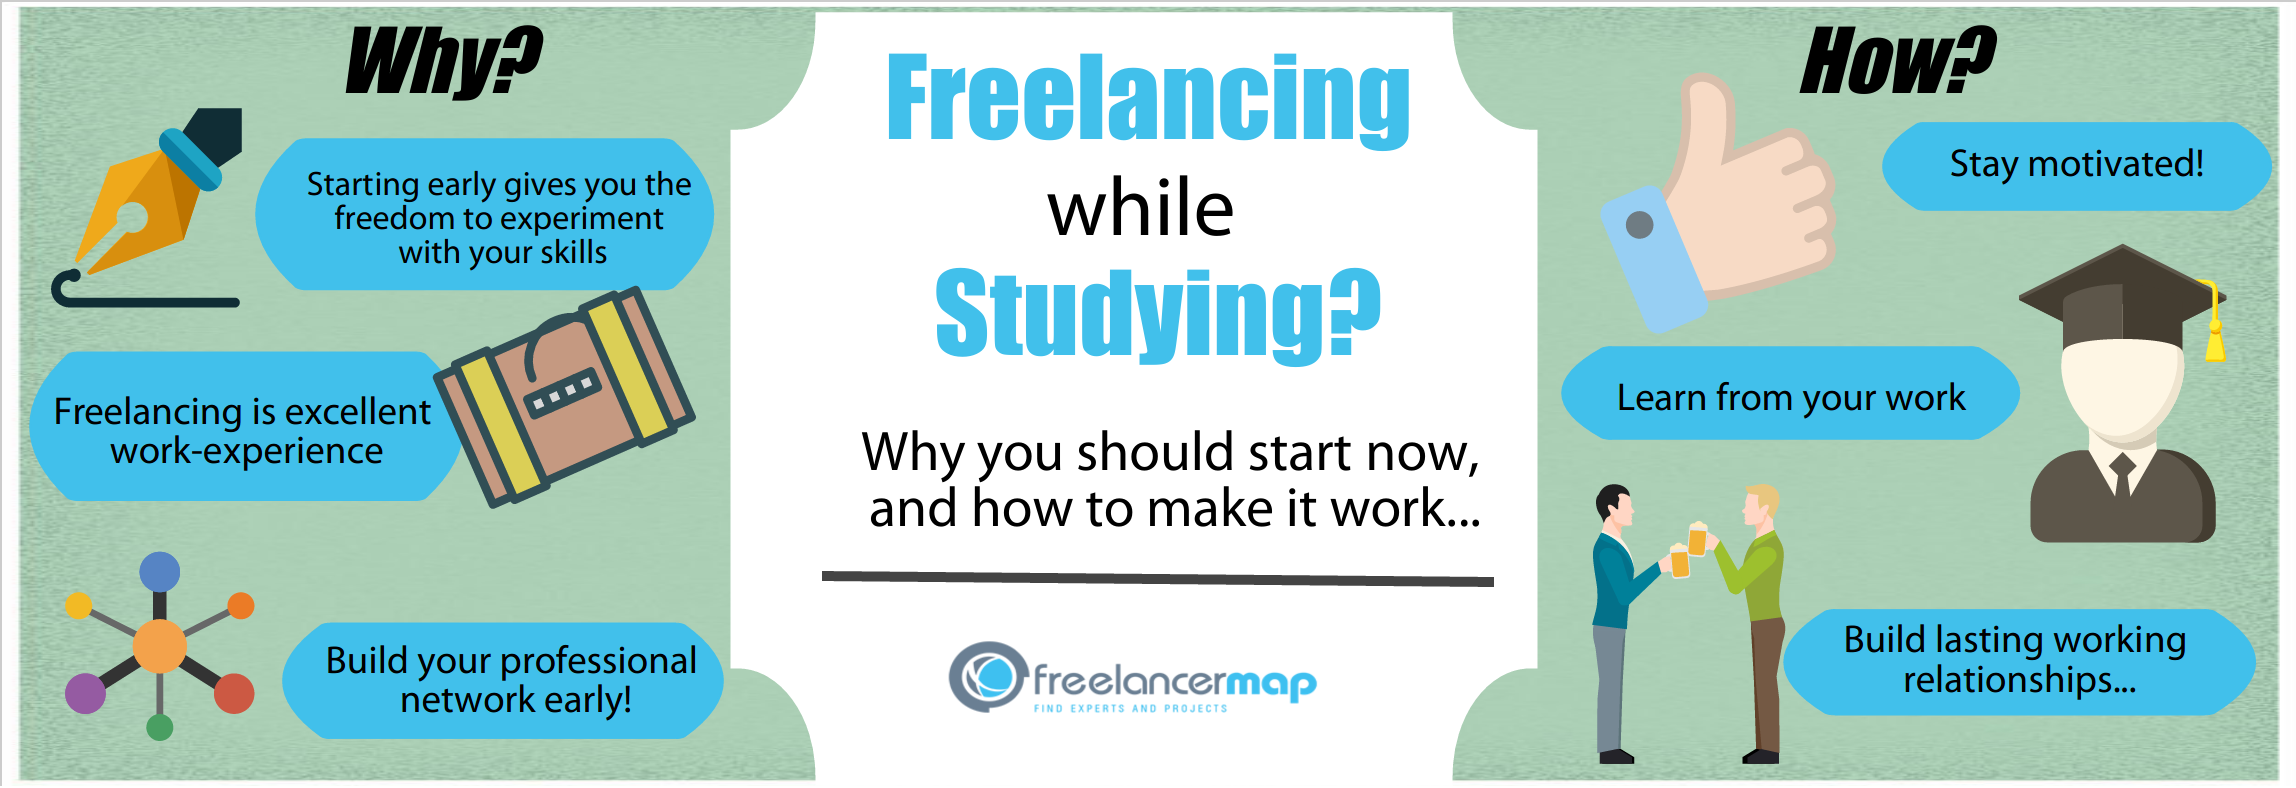 Freelancing while studying - why freelance while in college can jumpstart your career